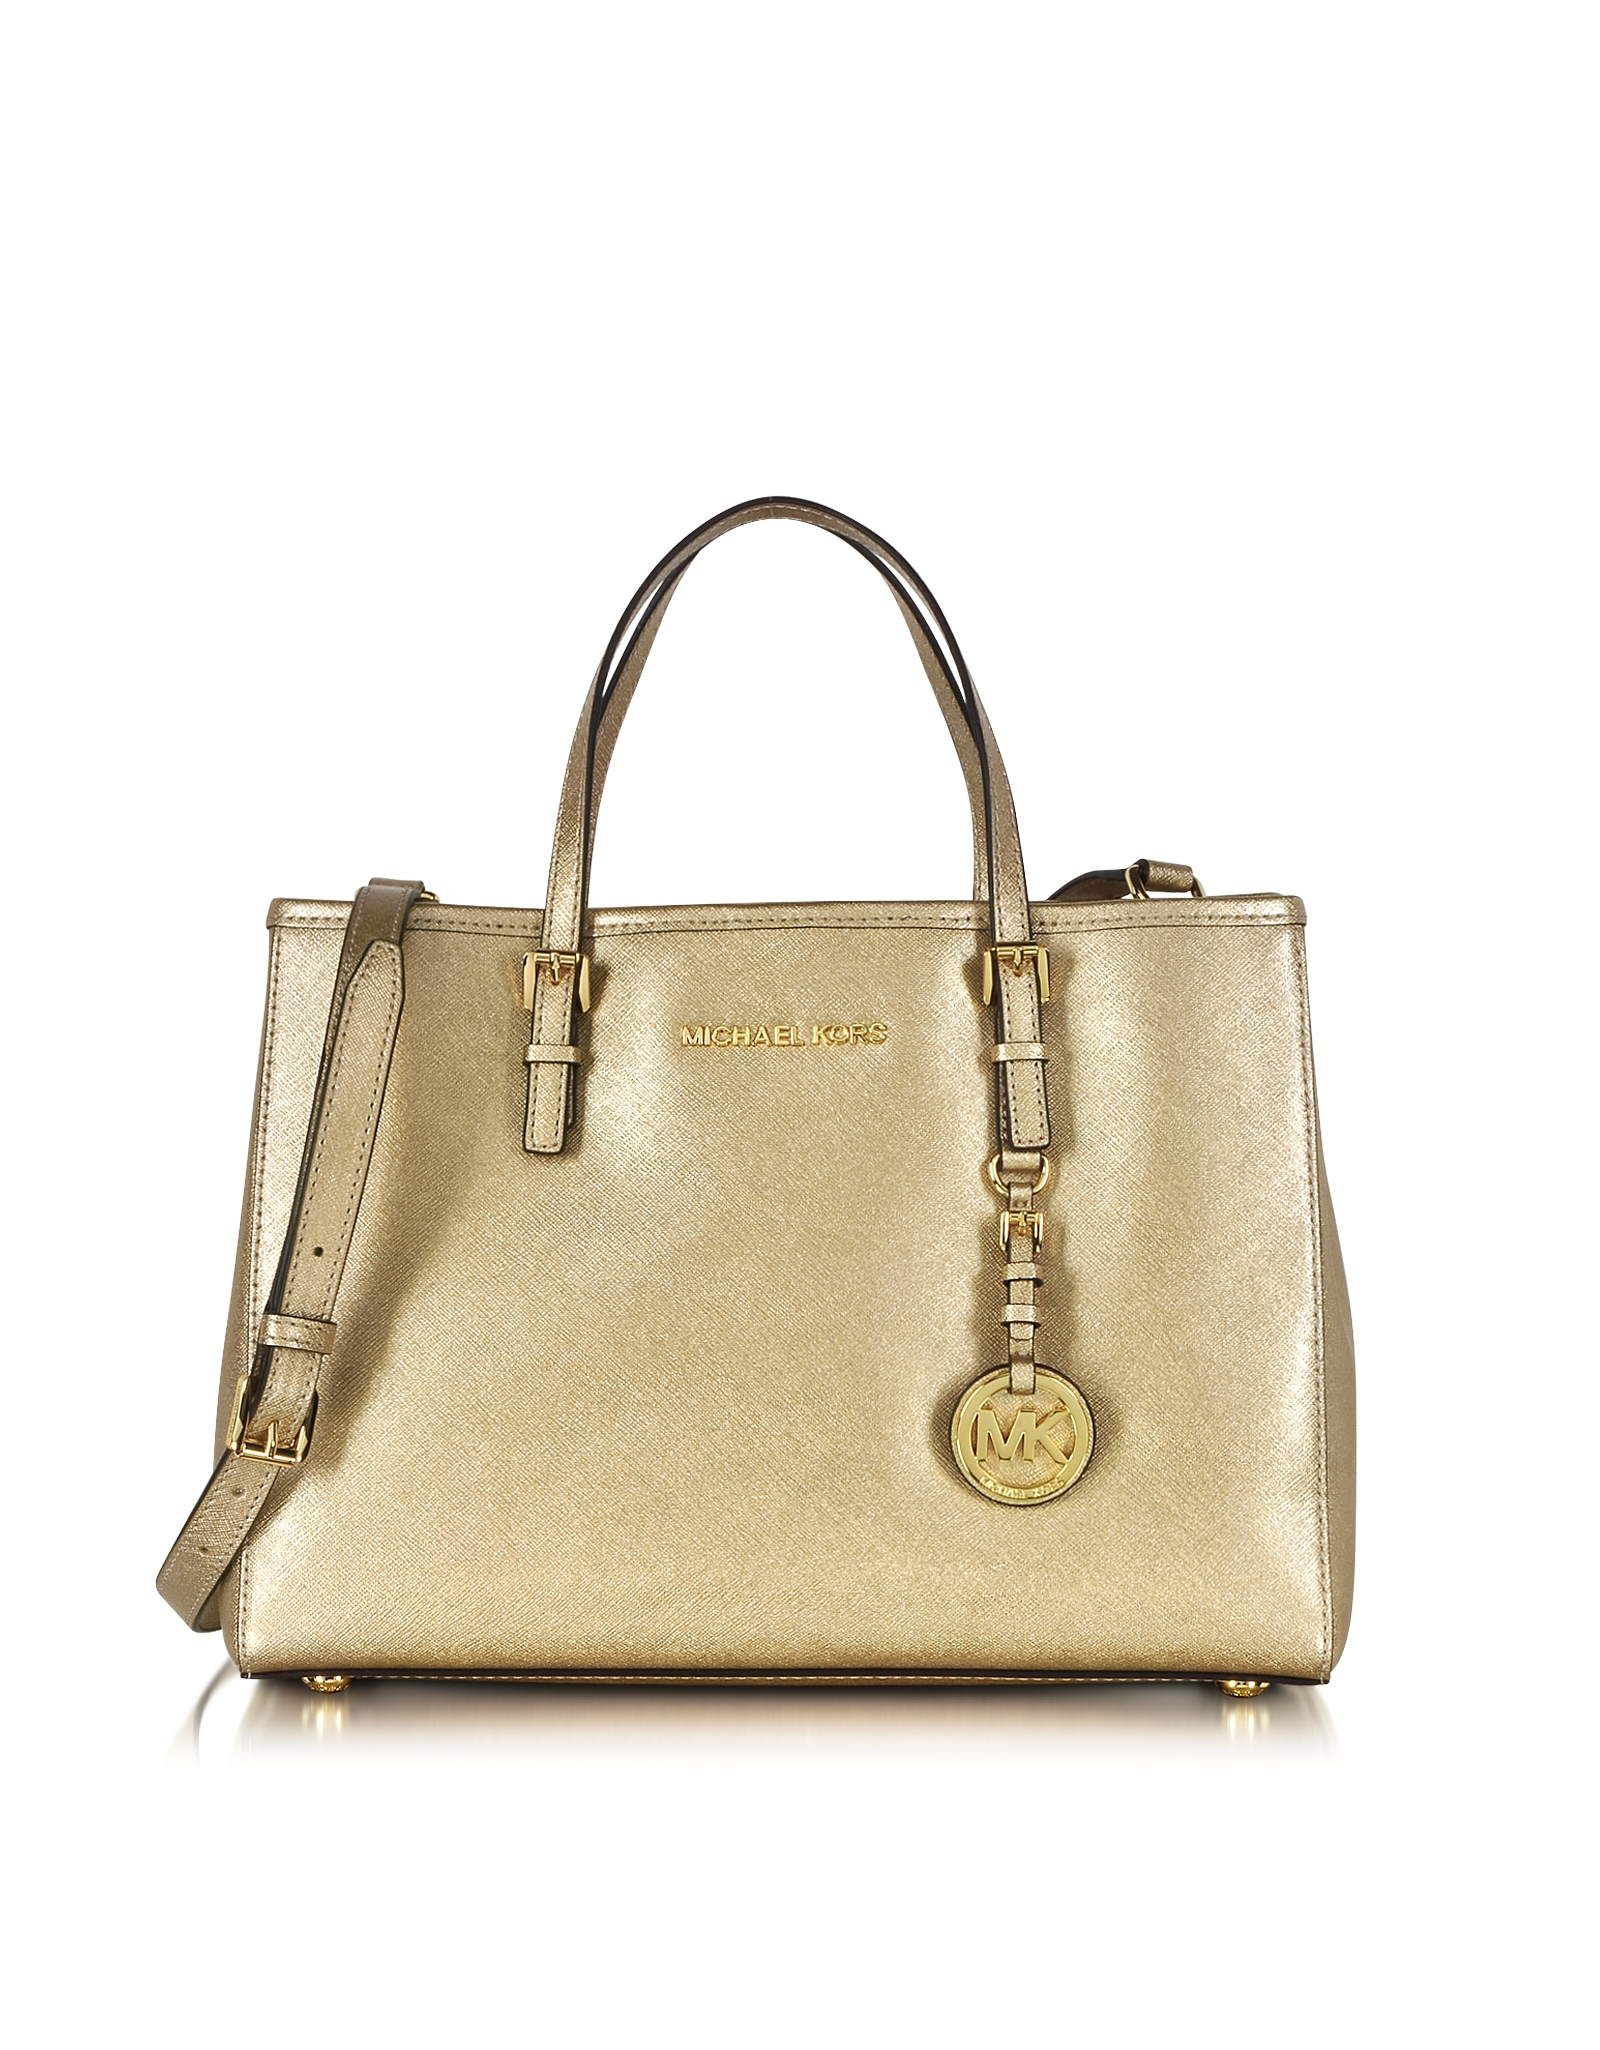 df008fa9ab26 Michael Kors Jet Set Travel Pale Gold Metallic Saffiano Leather ...